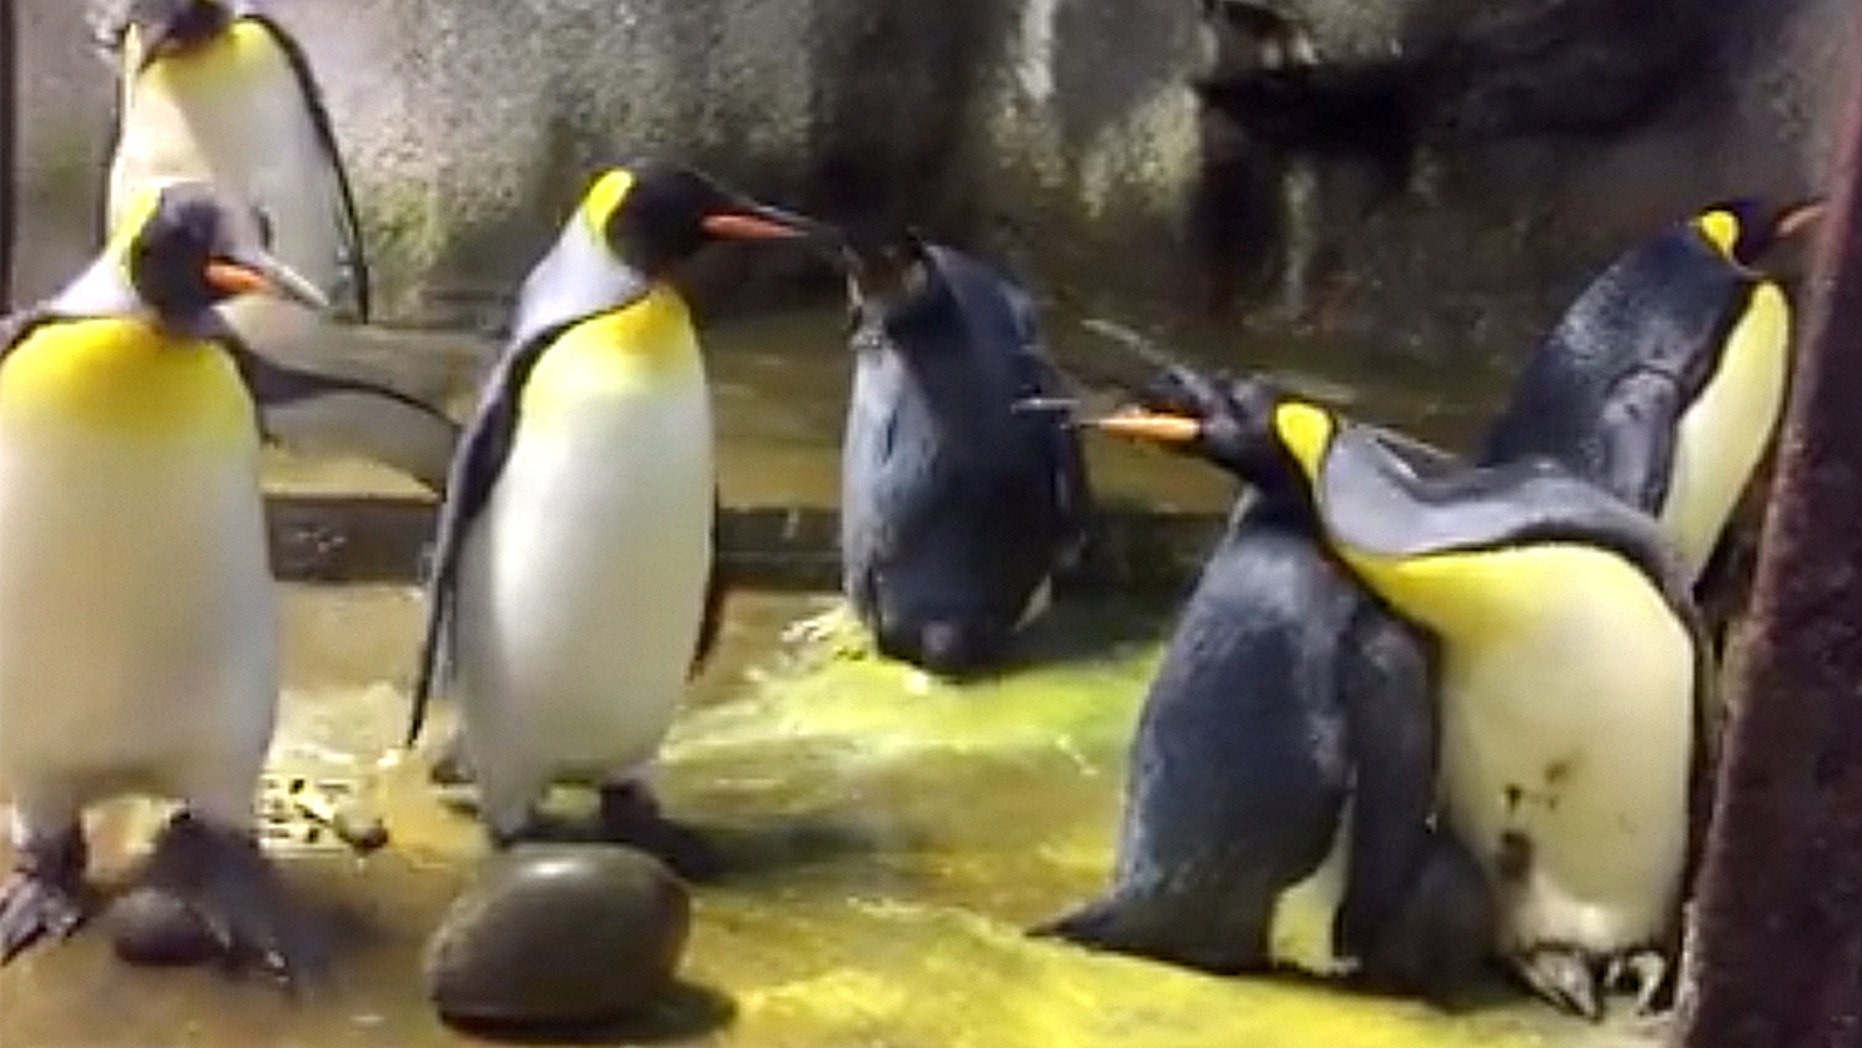 Animal keeper Sandie Hedegård Munck said the male penguin couple at Odense Zoo had been desperate to become parents.